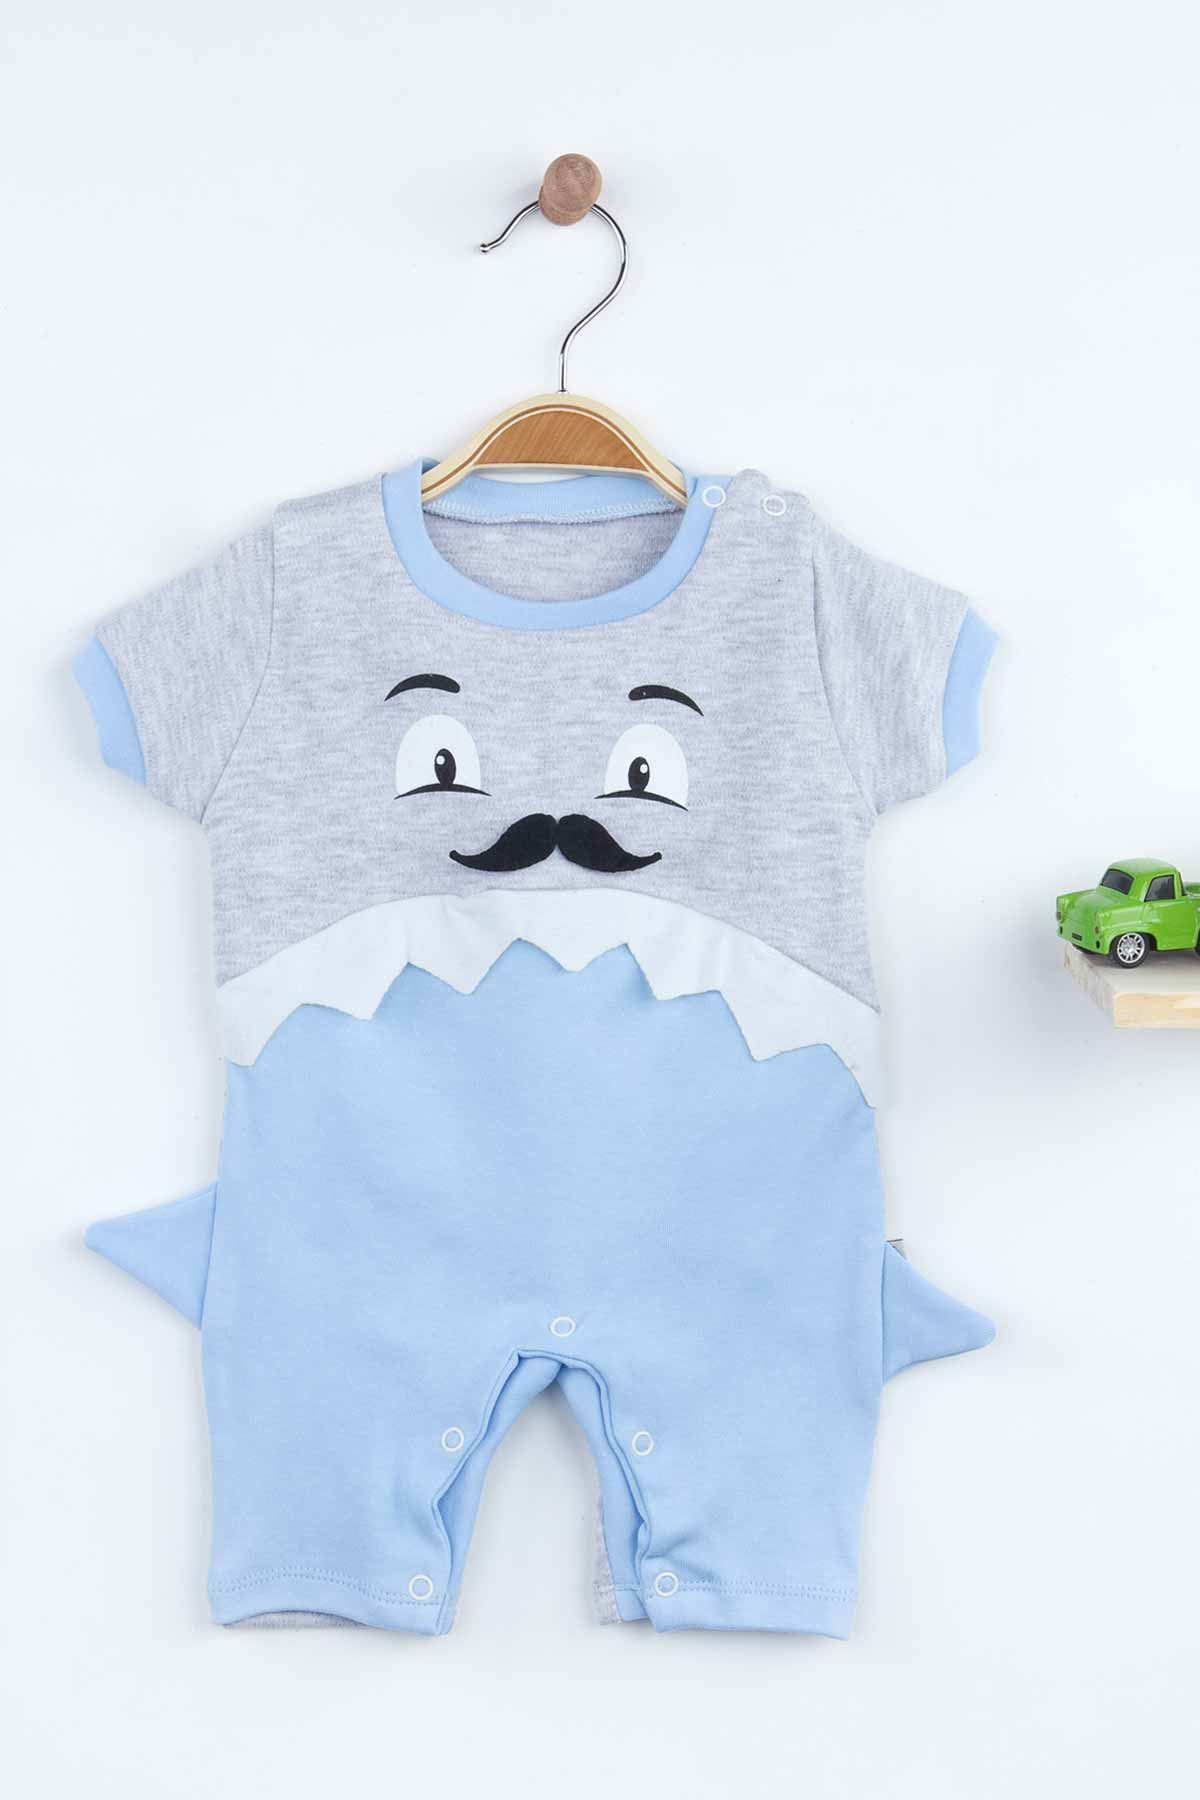 Blue Summer Shark Baby Boy Rompers Fashion 2021 New Season Style Babies Clothes Outfit Cotton Comfortable Underwear for Boys Baby